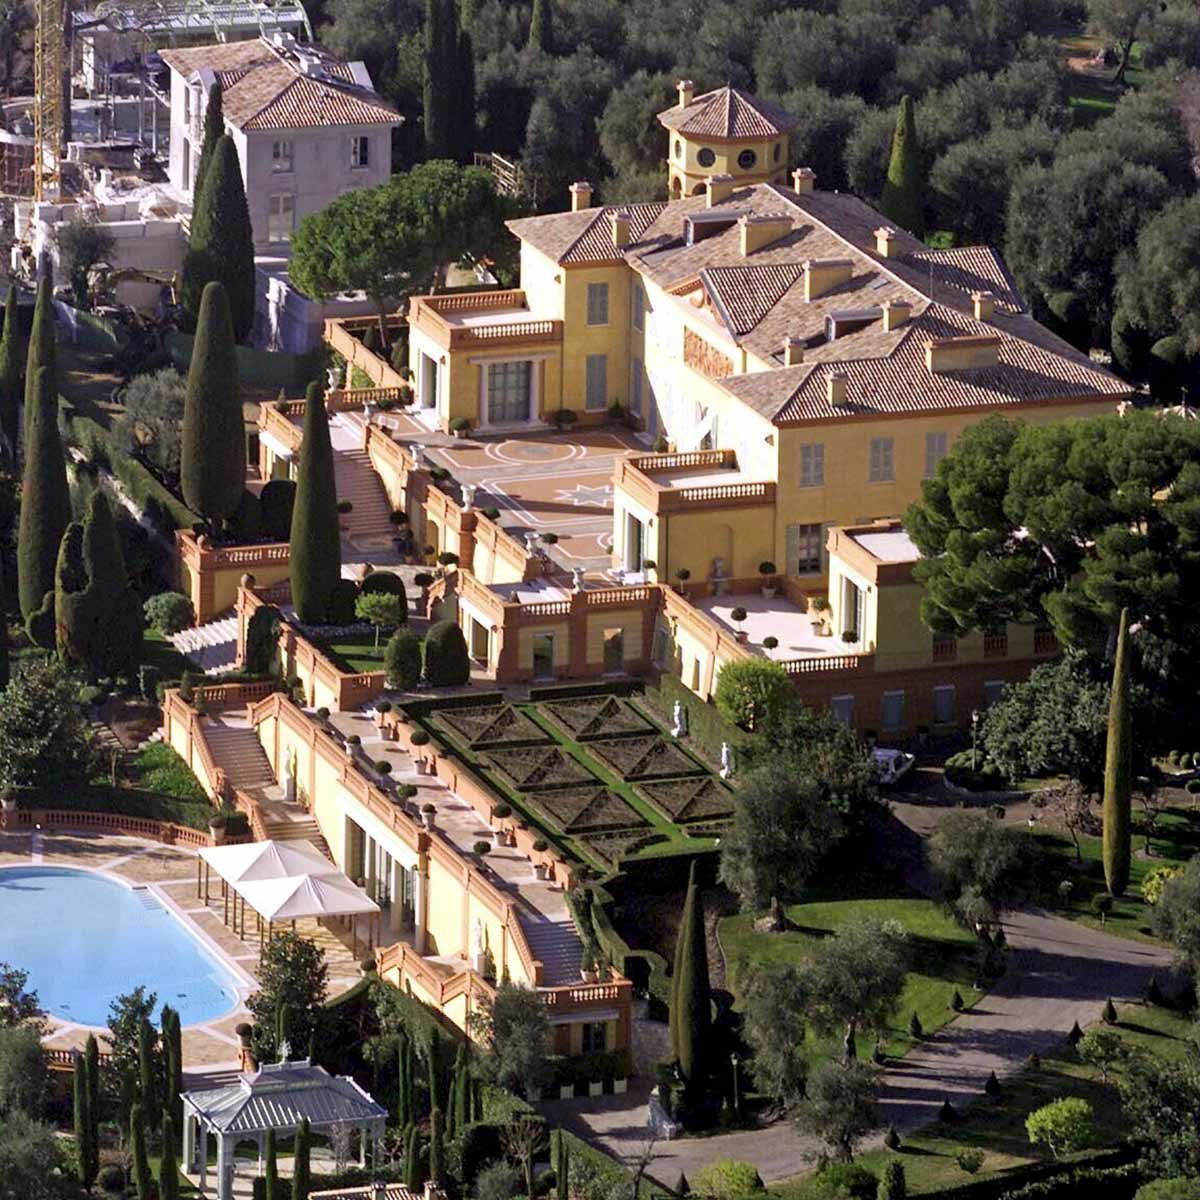 Aerial view of Villa Leopolda, built in 1900 by King Leopold of Belgium. It has 19 bedrooms and a double swimming pool over a 7 hectares terrain.